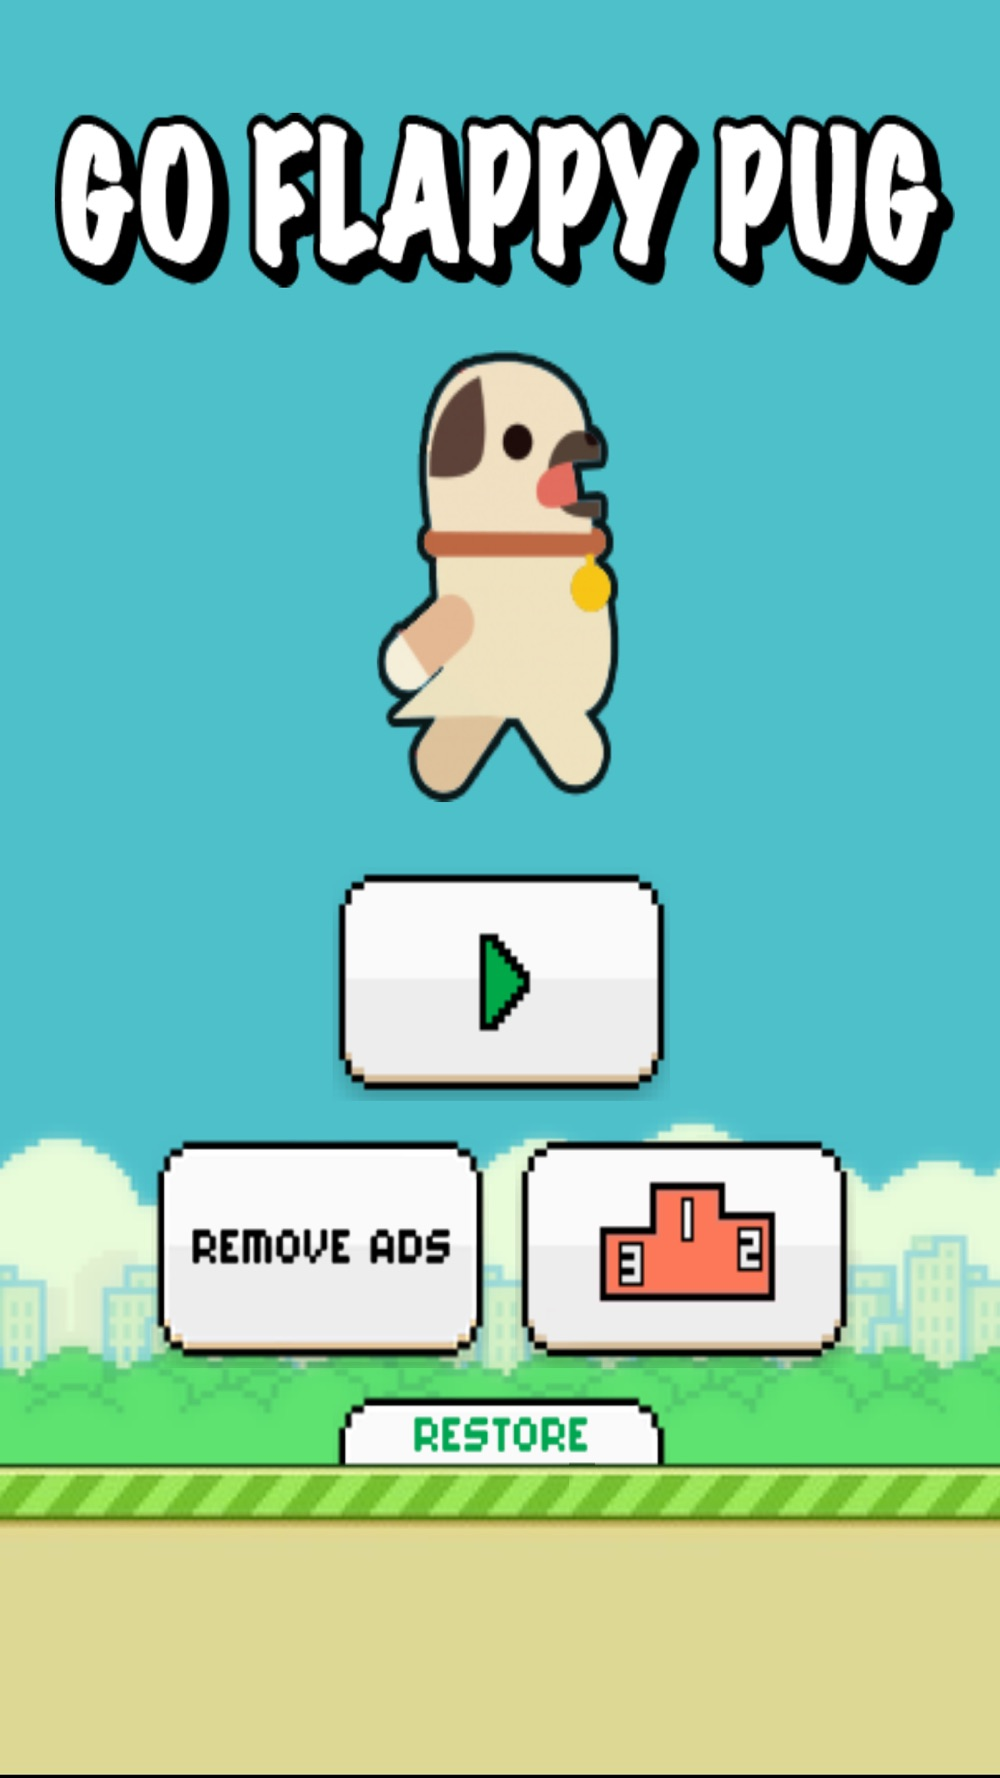 Hack tool for Go Flappy Pug